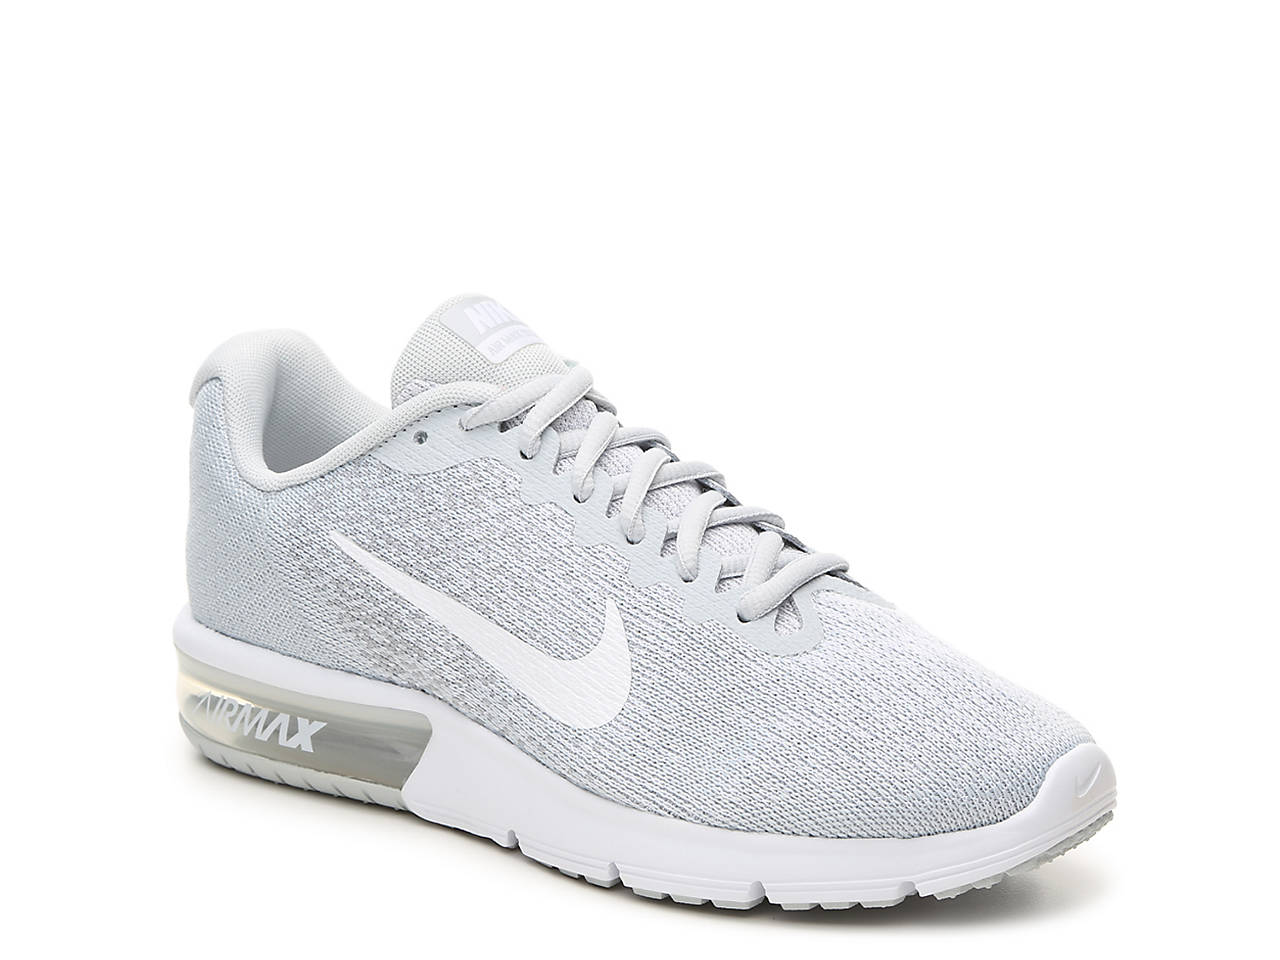 newest d7454 94775 Nike. Nike Air Max Sequent 2 Running Shoe ...